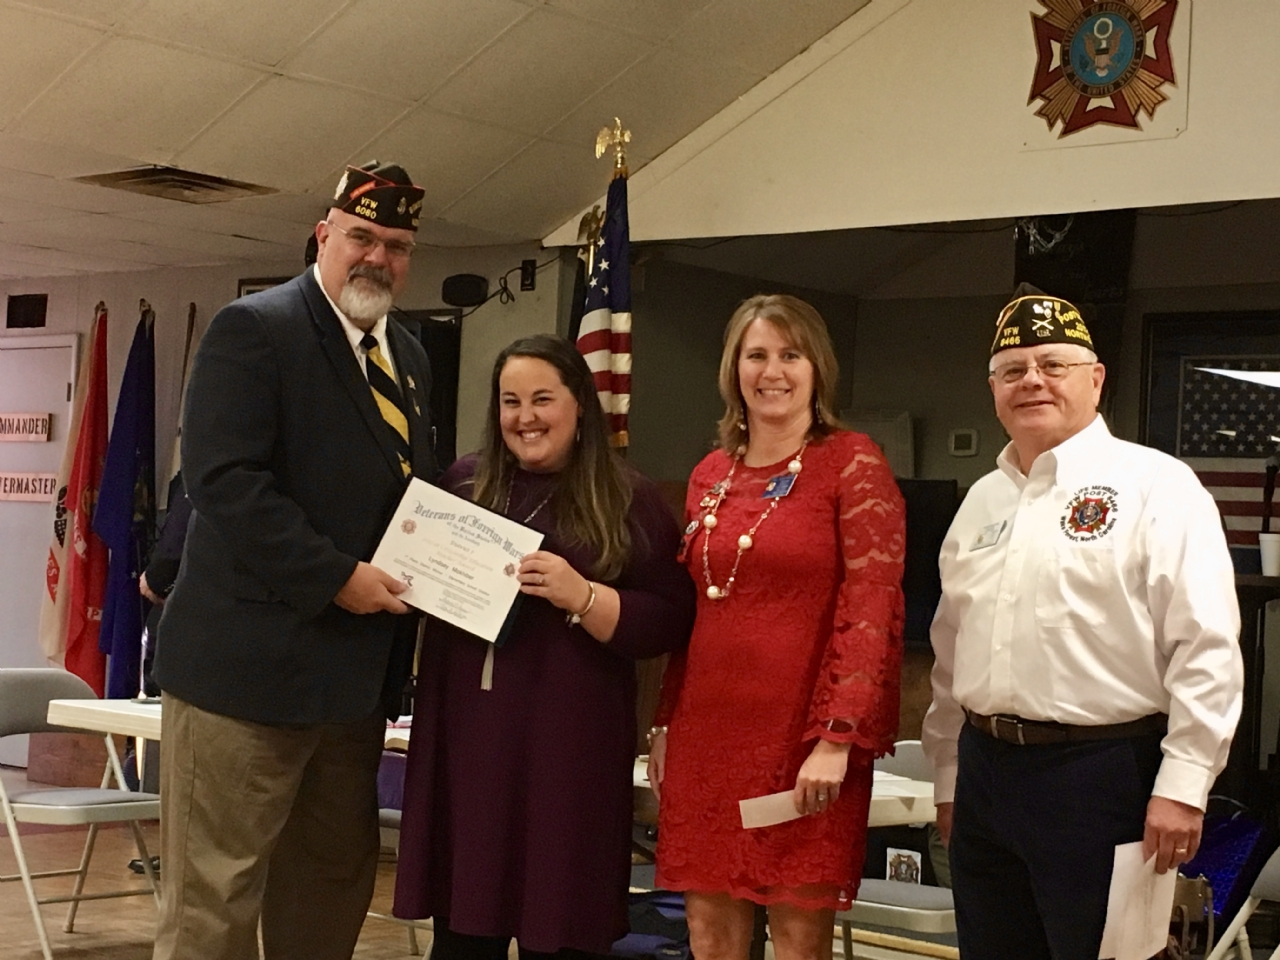 NC VFW Department (State) Commander Greg Stafford, District and Post 8466 Elementary School Teacher of the Year Lyndsey Mokhiber from Heritage Elementary School, District VFW Auxiliary President Tina Szafarski, Post 8466 Commander and District Chairperson for the TOY Program David Martin